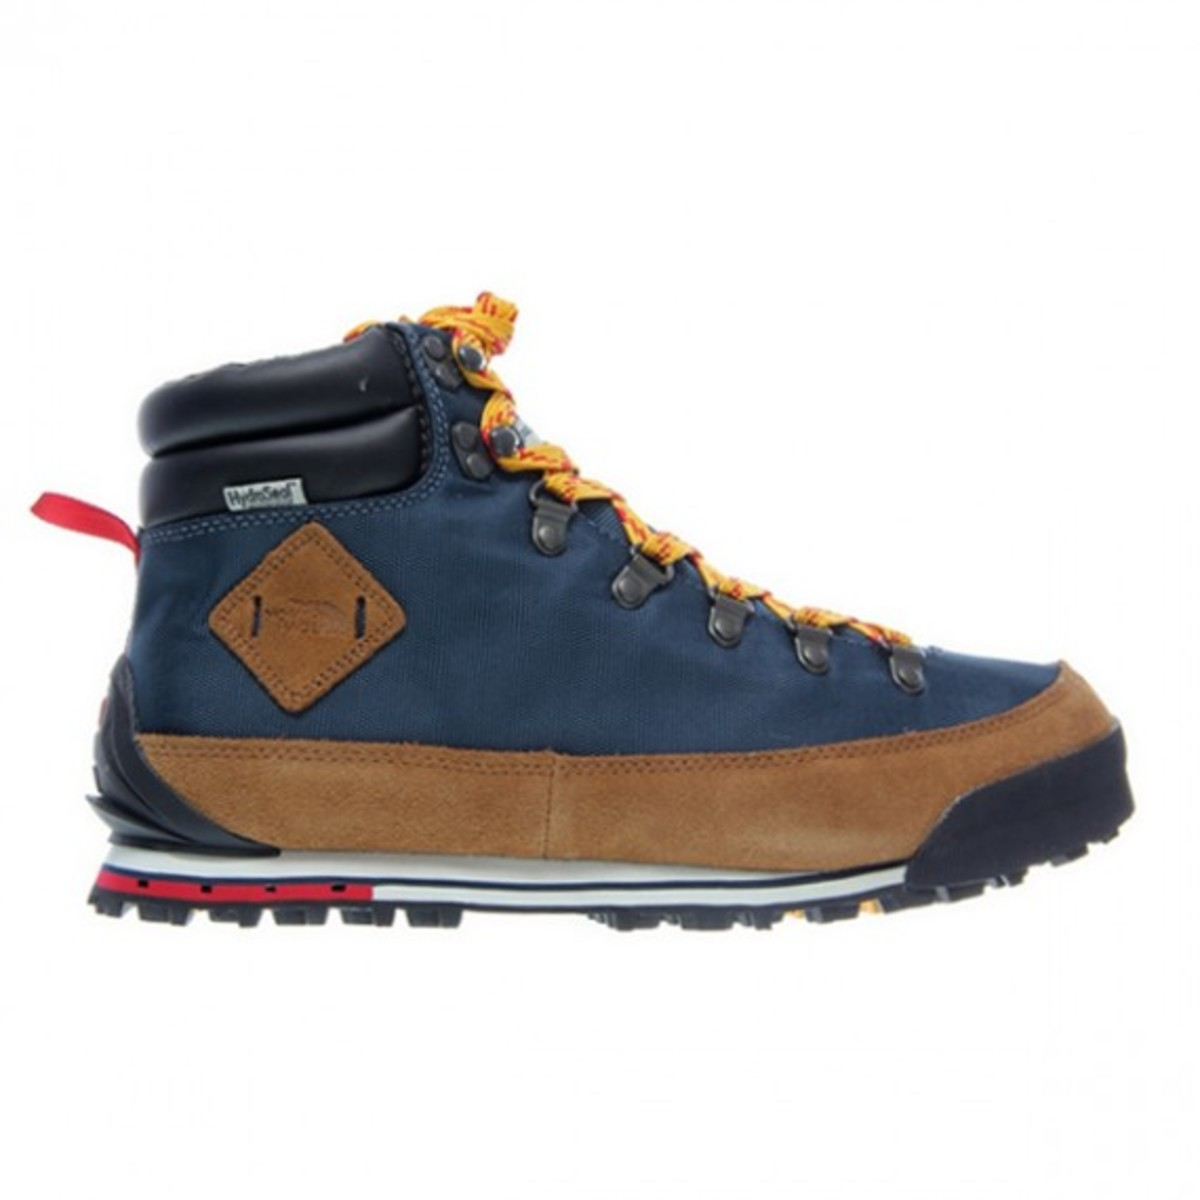 the-north-face-back-to-berkley-boots-01